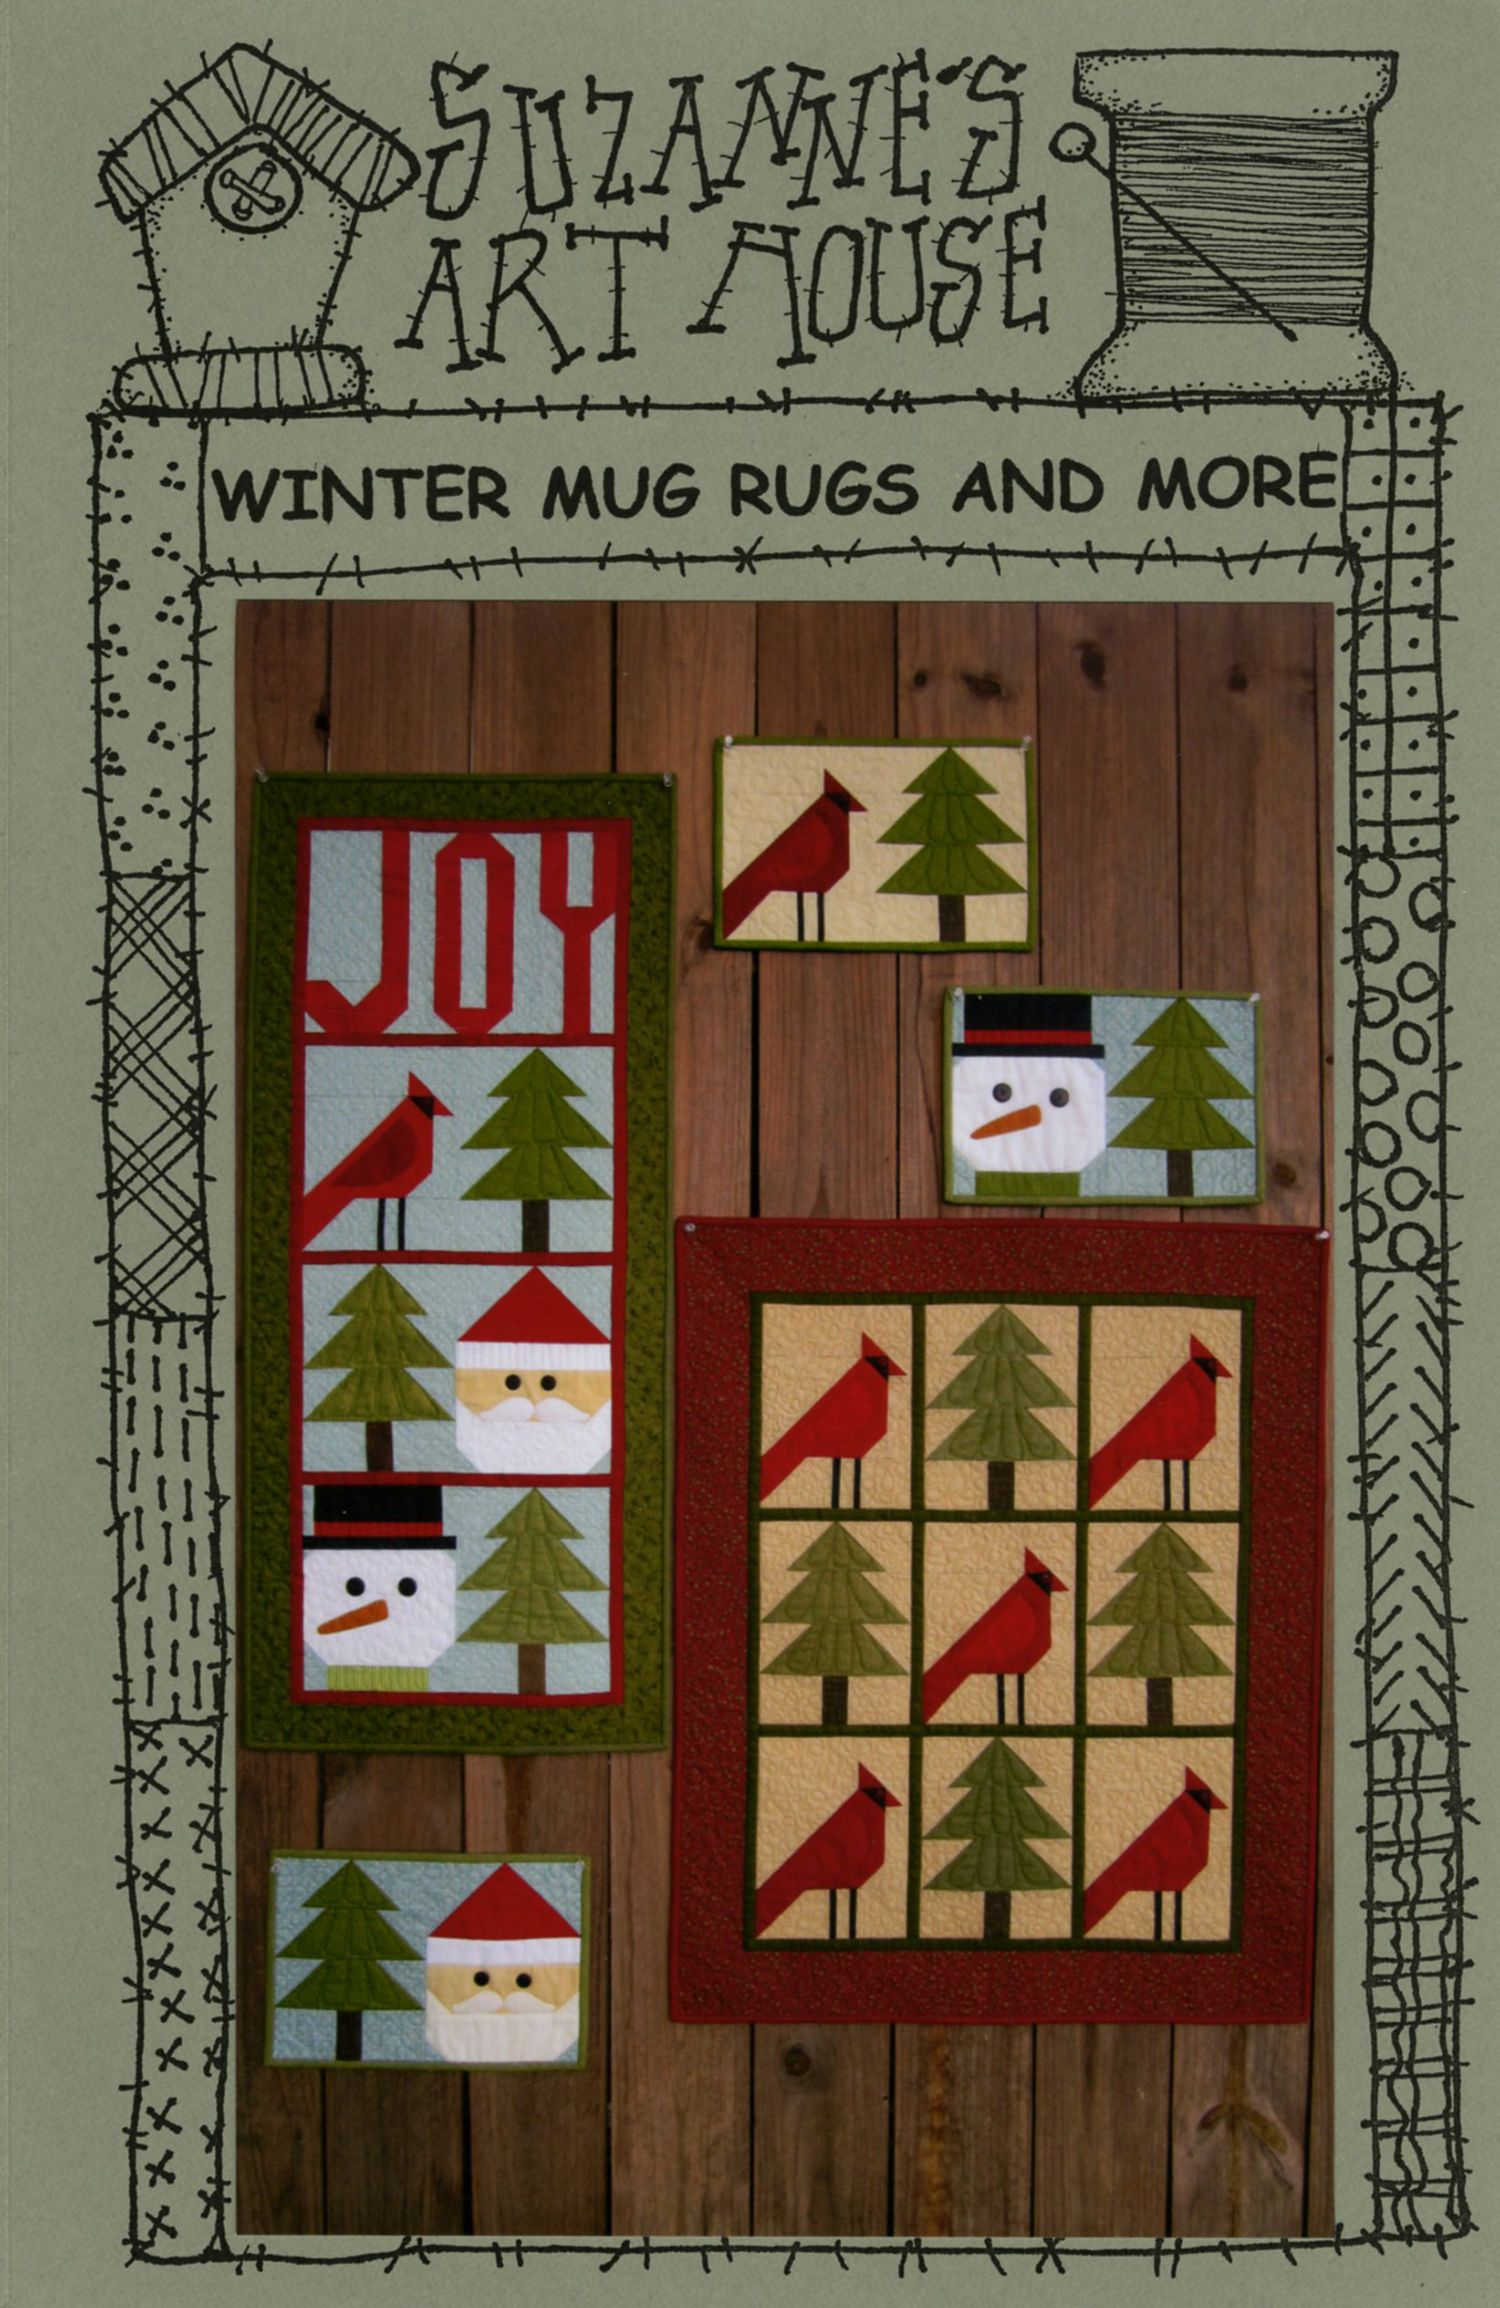 Winter Mug Rugs & More By Wenzlick, Suzanne - Hanging Joy 16in x ...